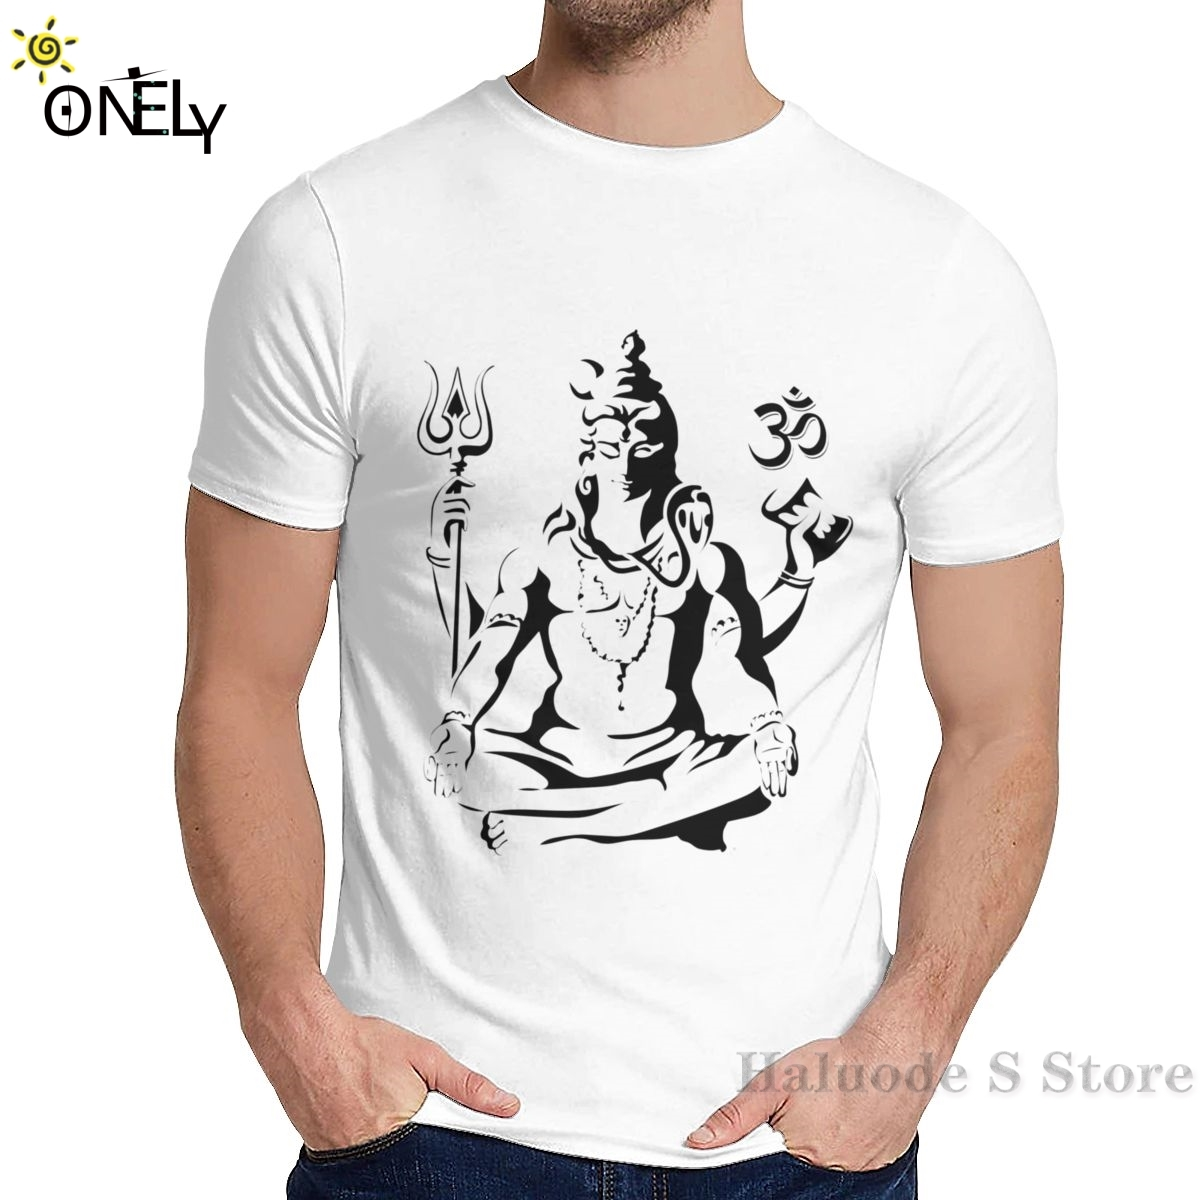 100 Cotton Men T Shirt Women T Shirt Harajuku Lord Shiva Sketch